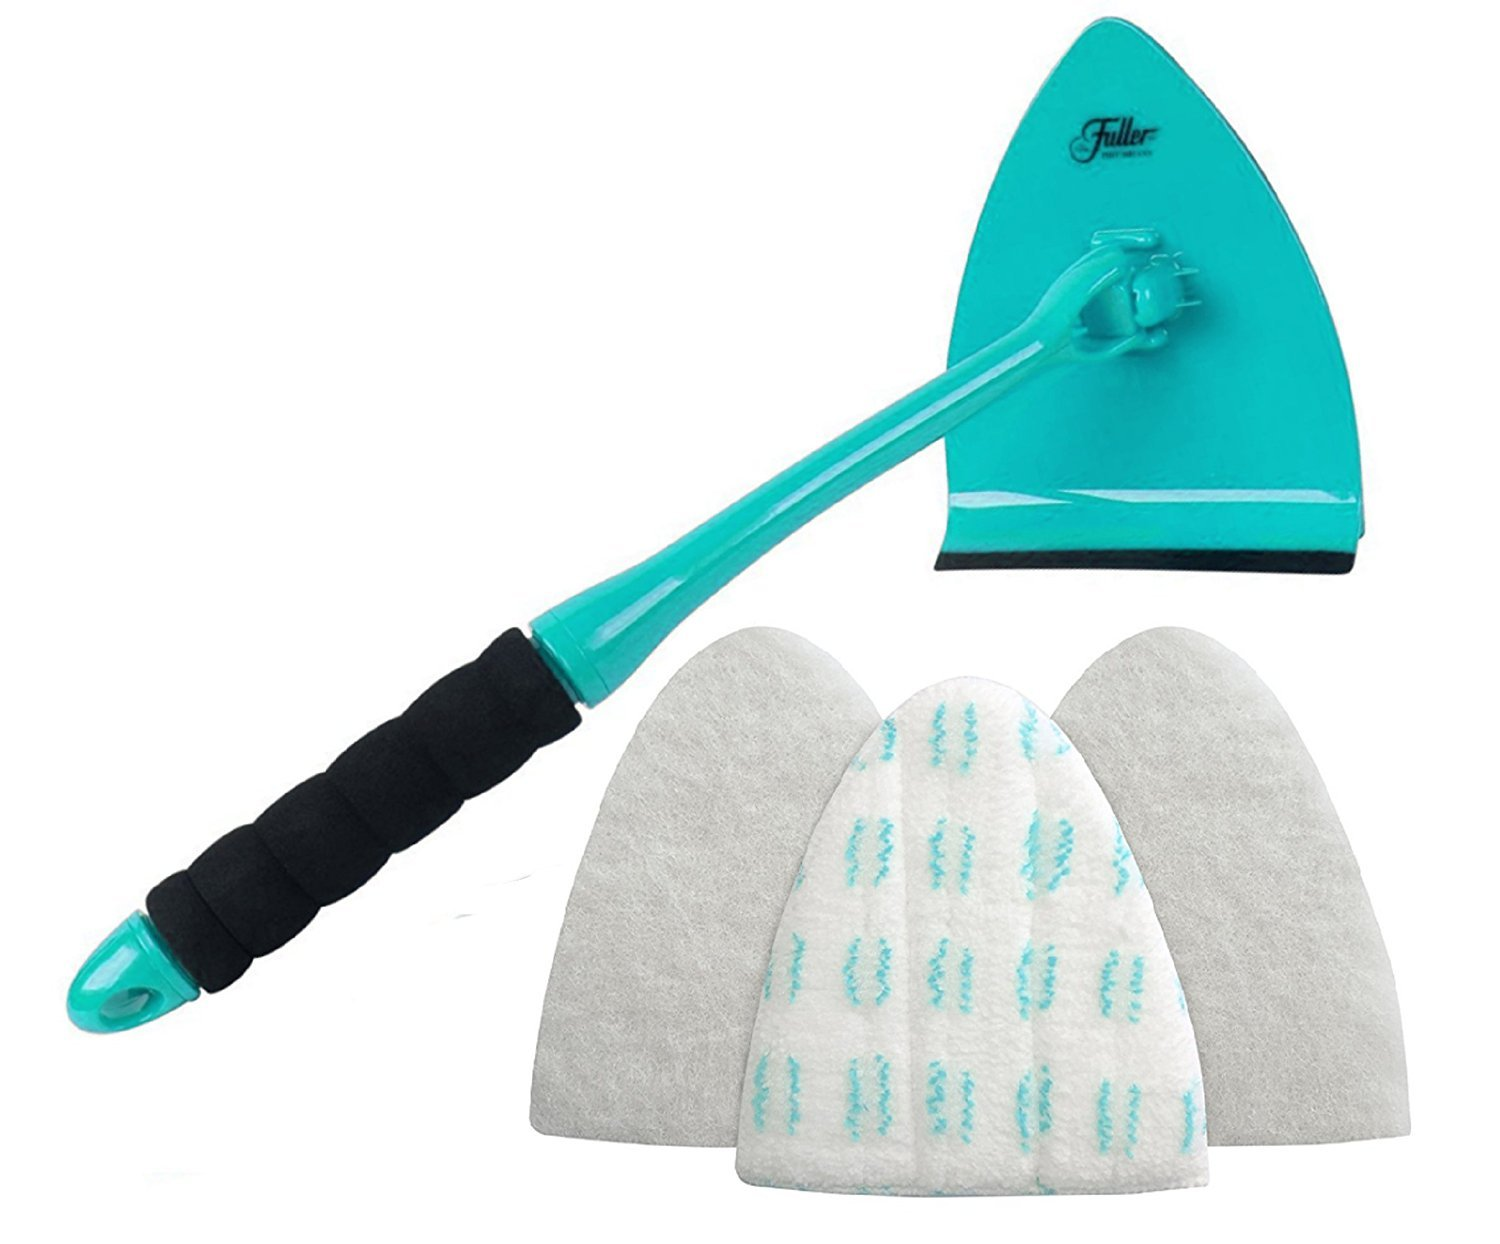 Fuller Brush BathClean Tile and Bathroom Scrubbing Kit with Big EZ Bath Scrubber & Squeege by Fuller Brush (Image #2)